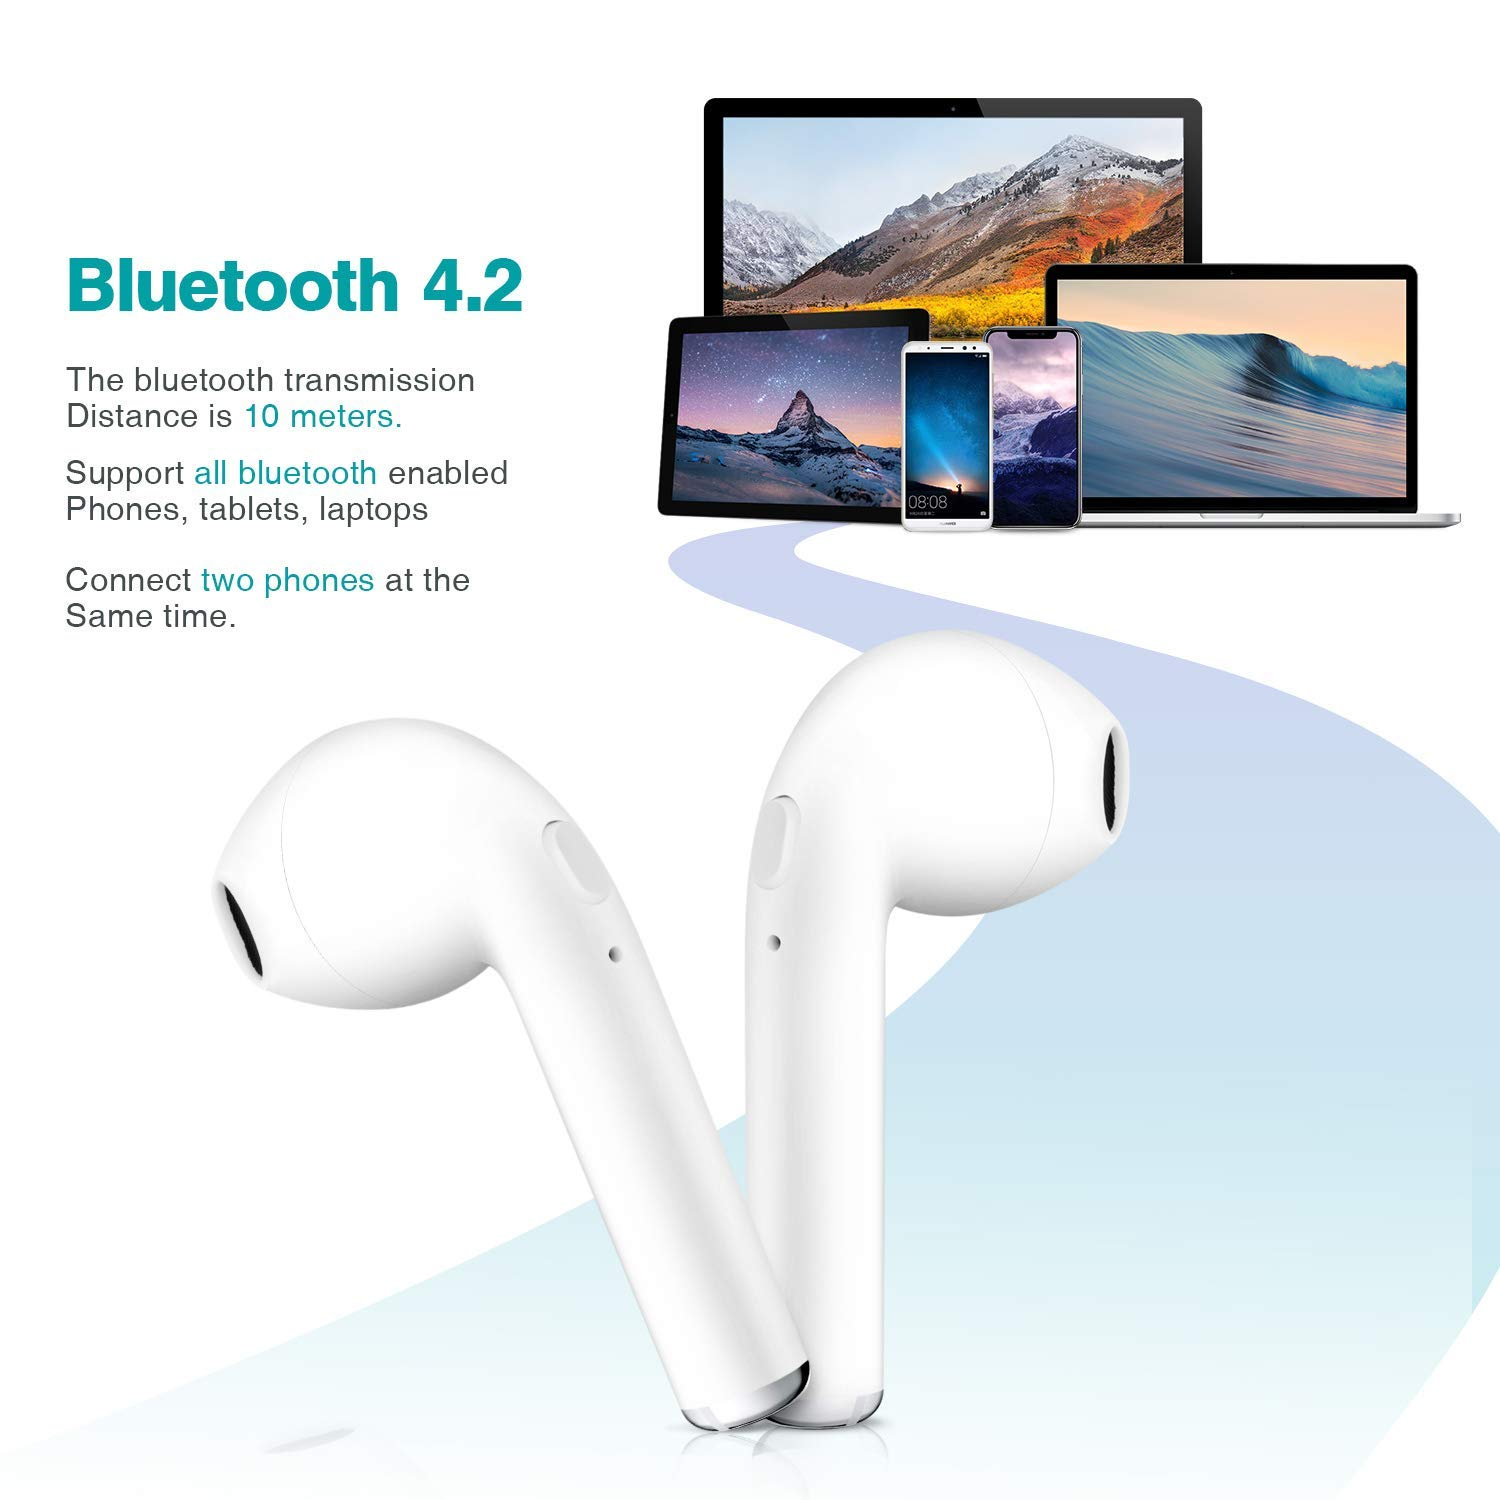 Bluetooth Headphones Wireless Earbuds Mini Earphones Bluetooth 5.0 in-Ear Stereo Sound Noise Cancelling 2 Built-in Mic Earphones Charging Case Compatible All Bluetooth Devices